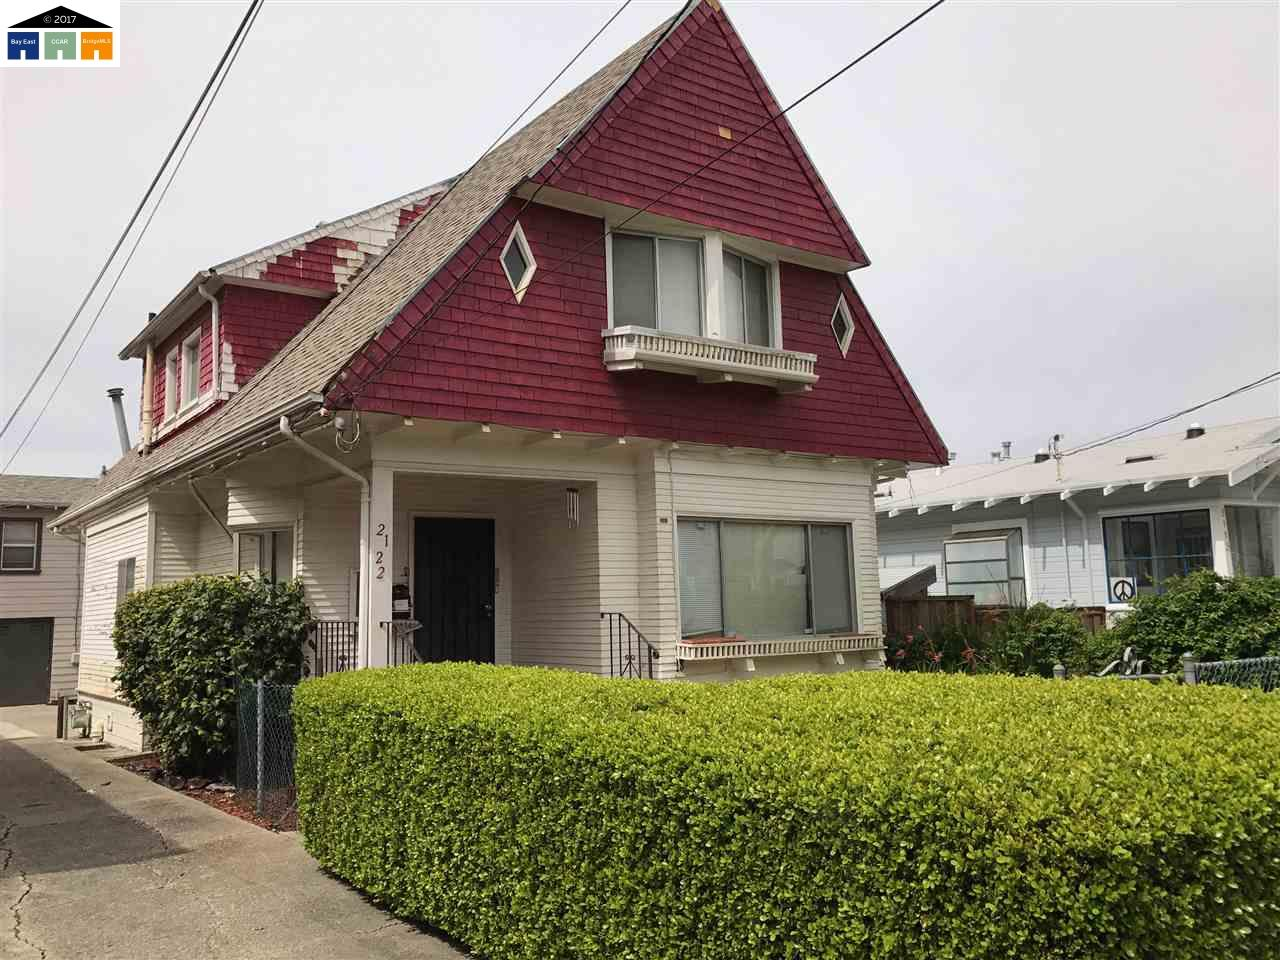 Additional photo for property listing at 2122 9Th Street 2122 9Th Street Berkeley, California 94710 Estados Unidos